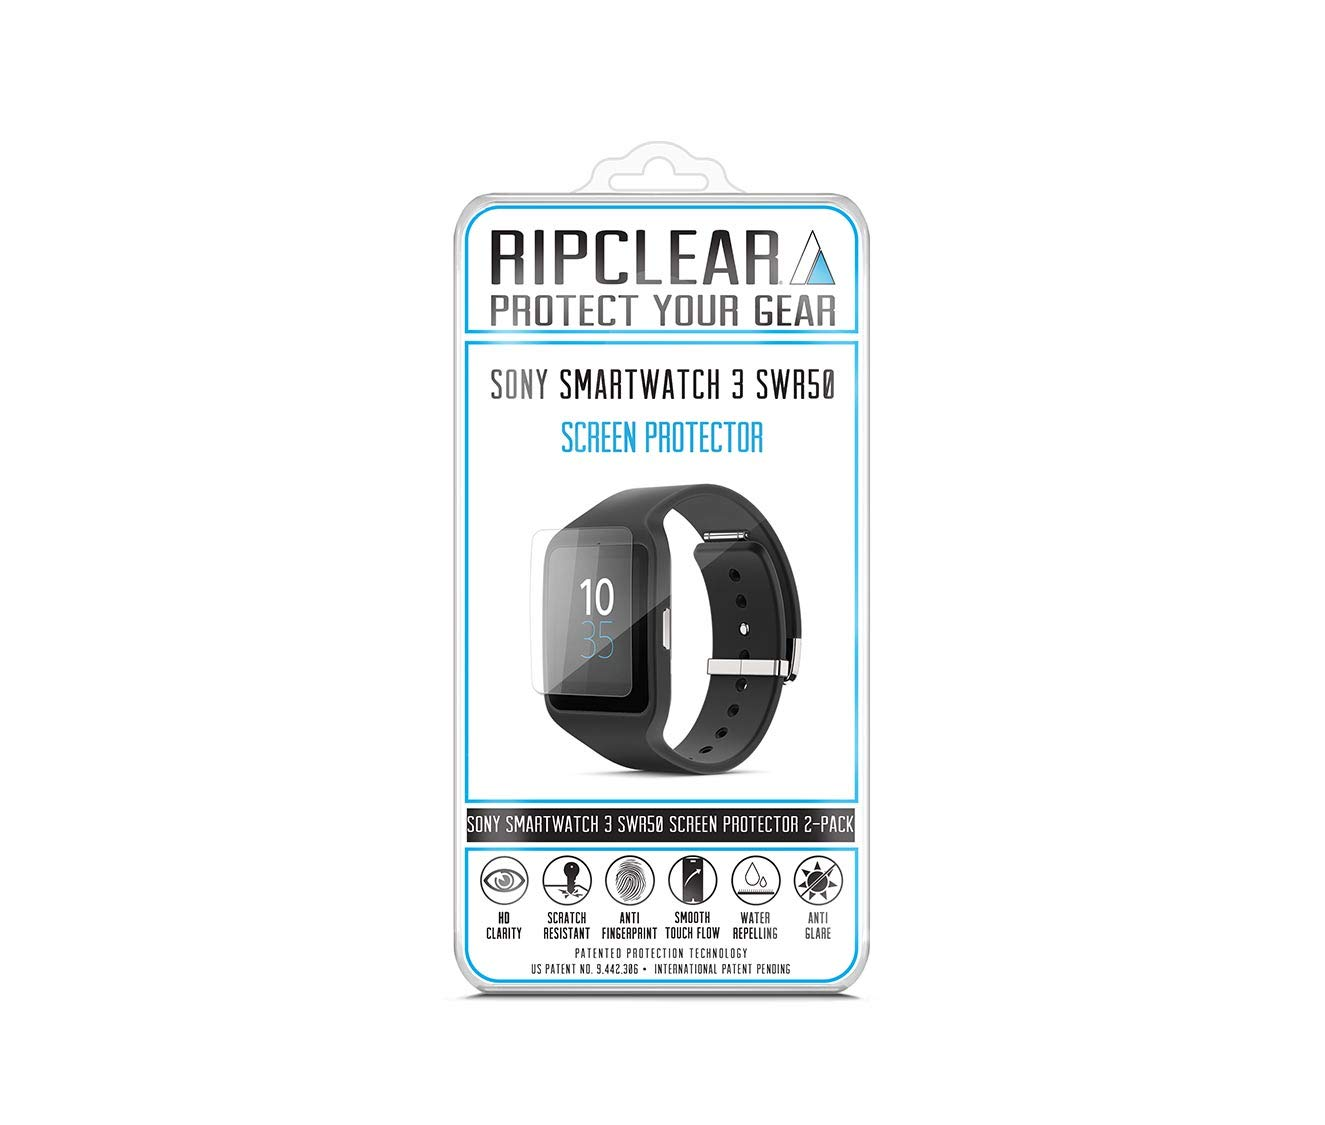 Ripclear Sony SmartWatch 3 SWR50 Smartwatch Screen Protector Kit ...